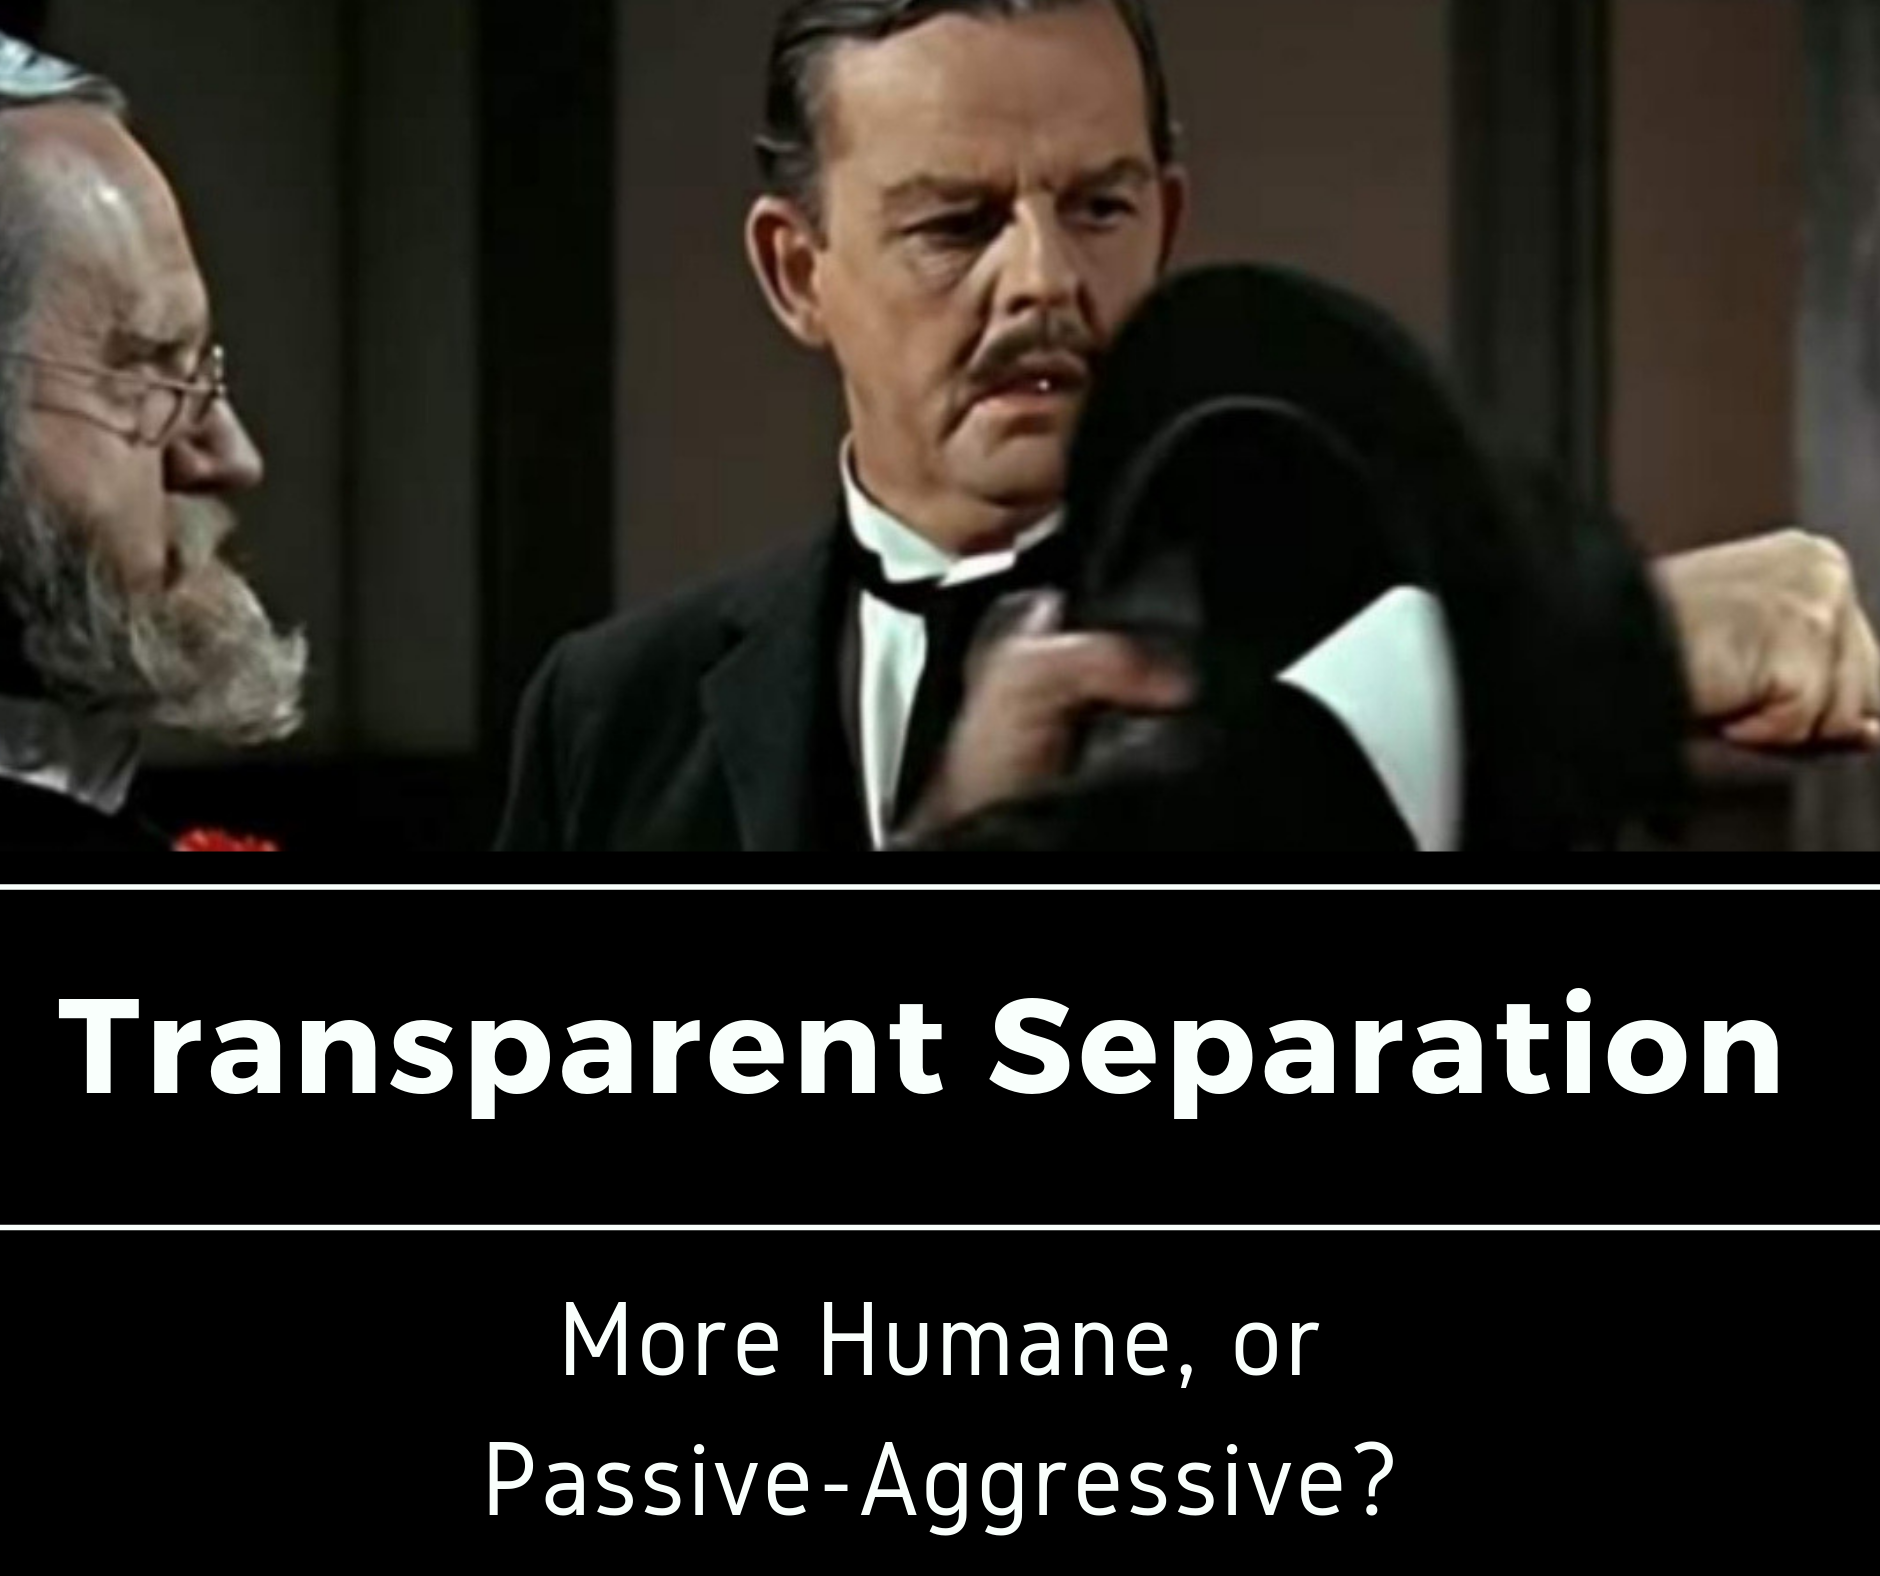 Transparent Separation: More Humane or just Passive-Aggressive?